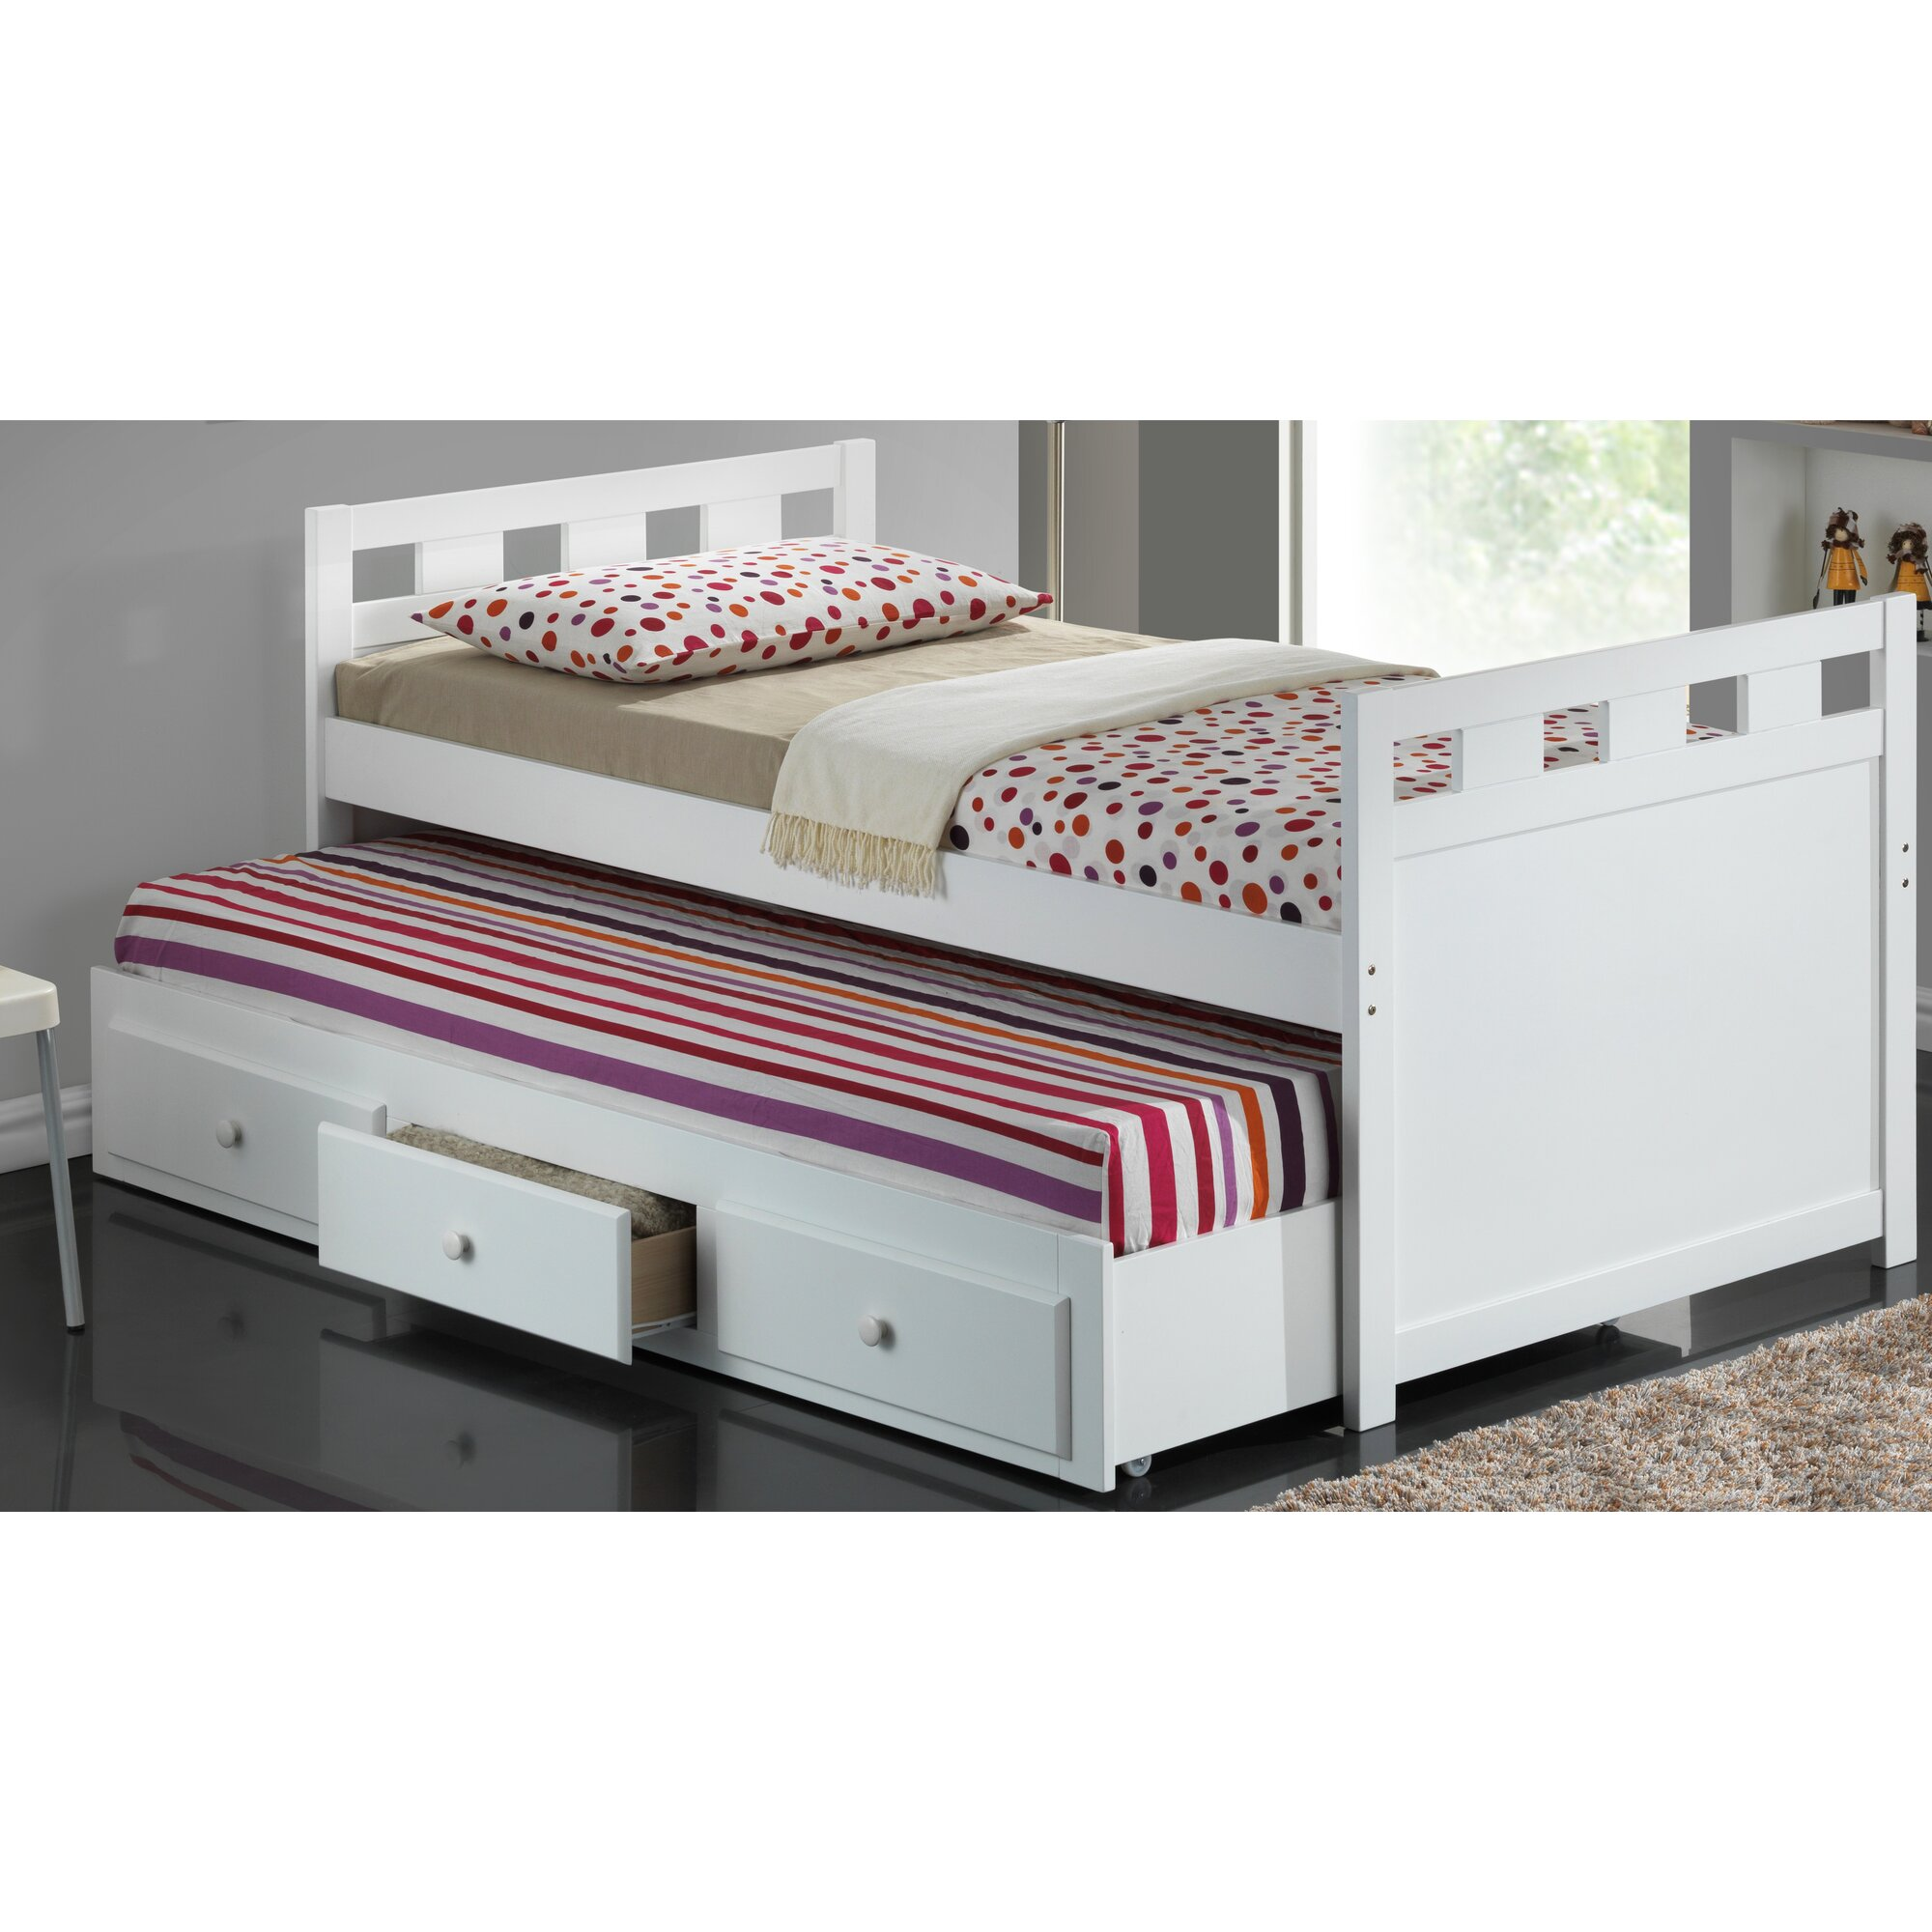 University loft graduate series twin xl open loft bed natural finish - Twin Captain Bed With Trundle And Storage